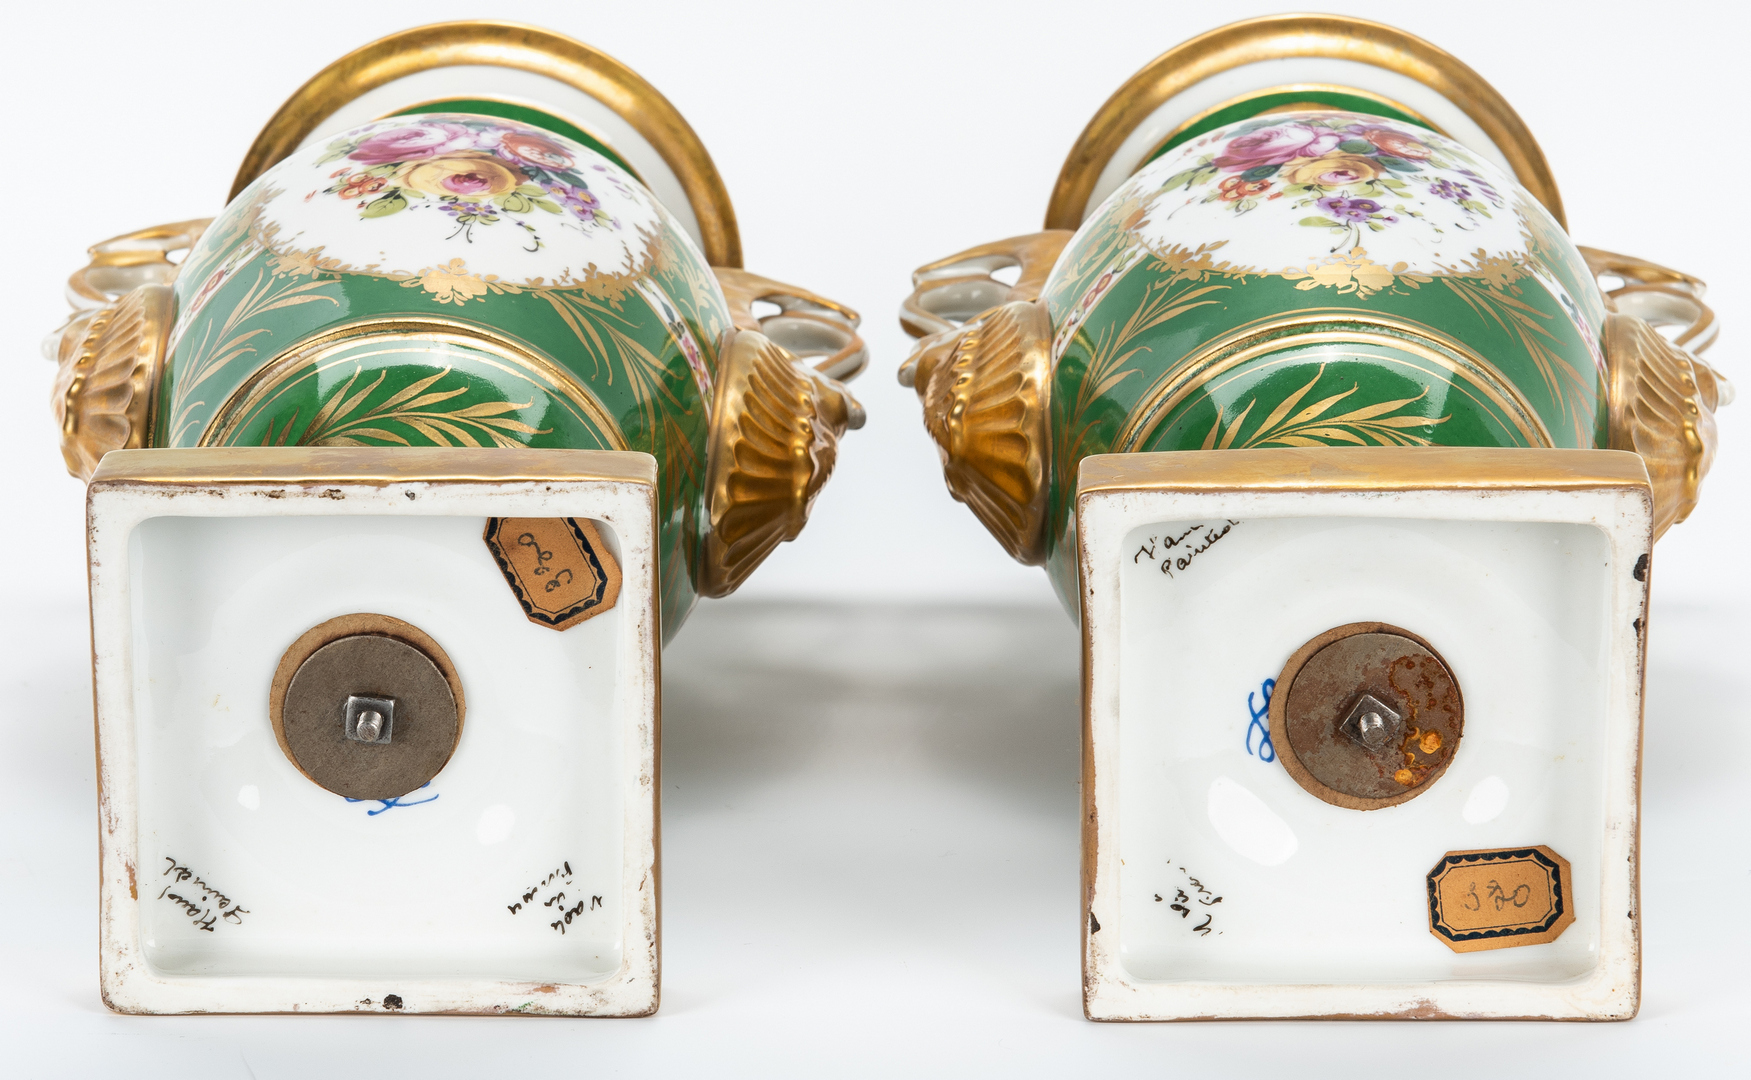 Lot 843: Pair of French Porcelain Urns